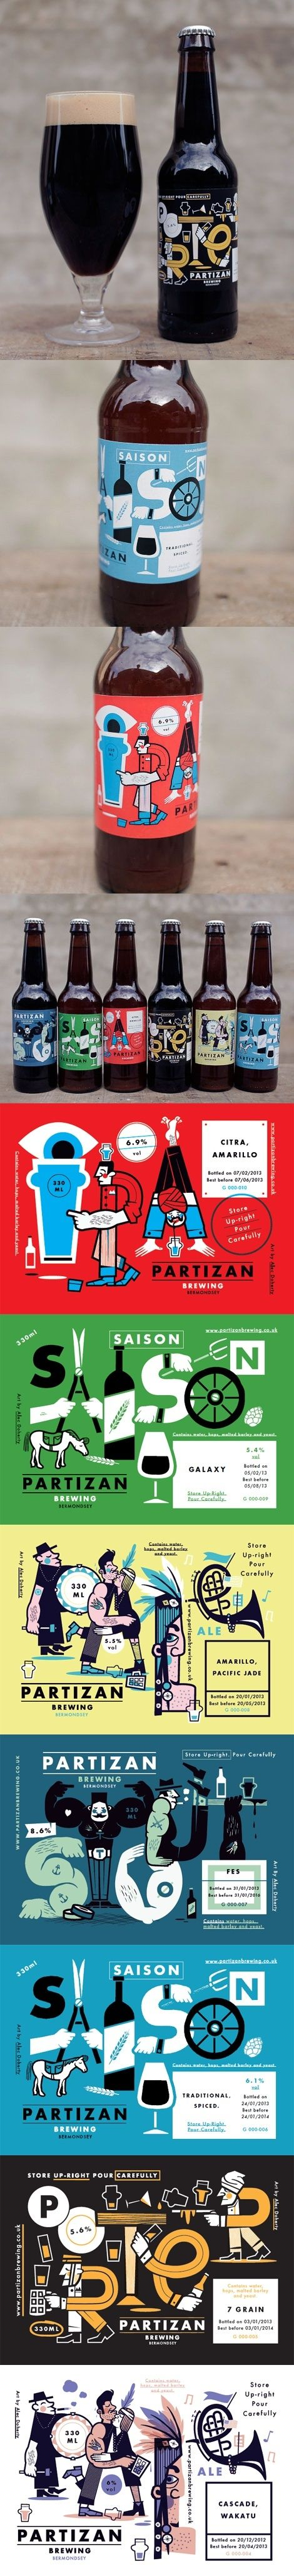 Partizan Brewing PD  Annotation:   This illustrator uses clever comic style illustrations that would undoubtedly catch a consumer's attention. Using a minimal range of colours, the illustrator has created words using illustrations and creates novelty that would entice a gender neutralised target market.